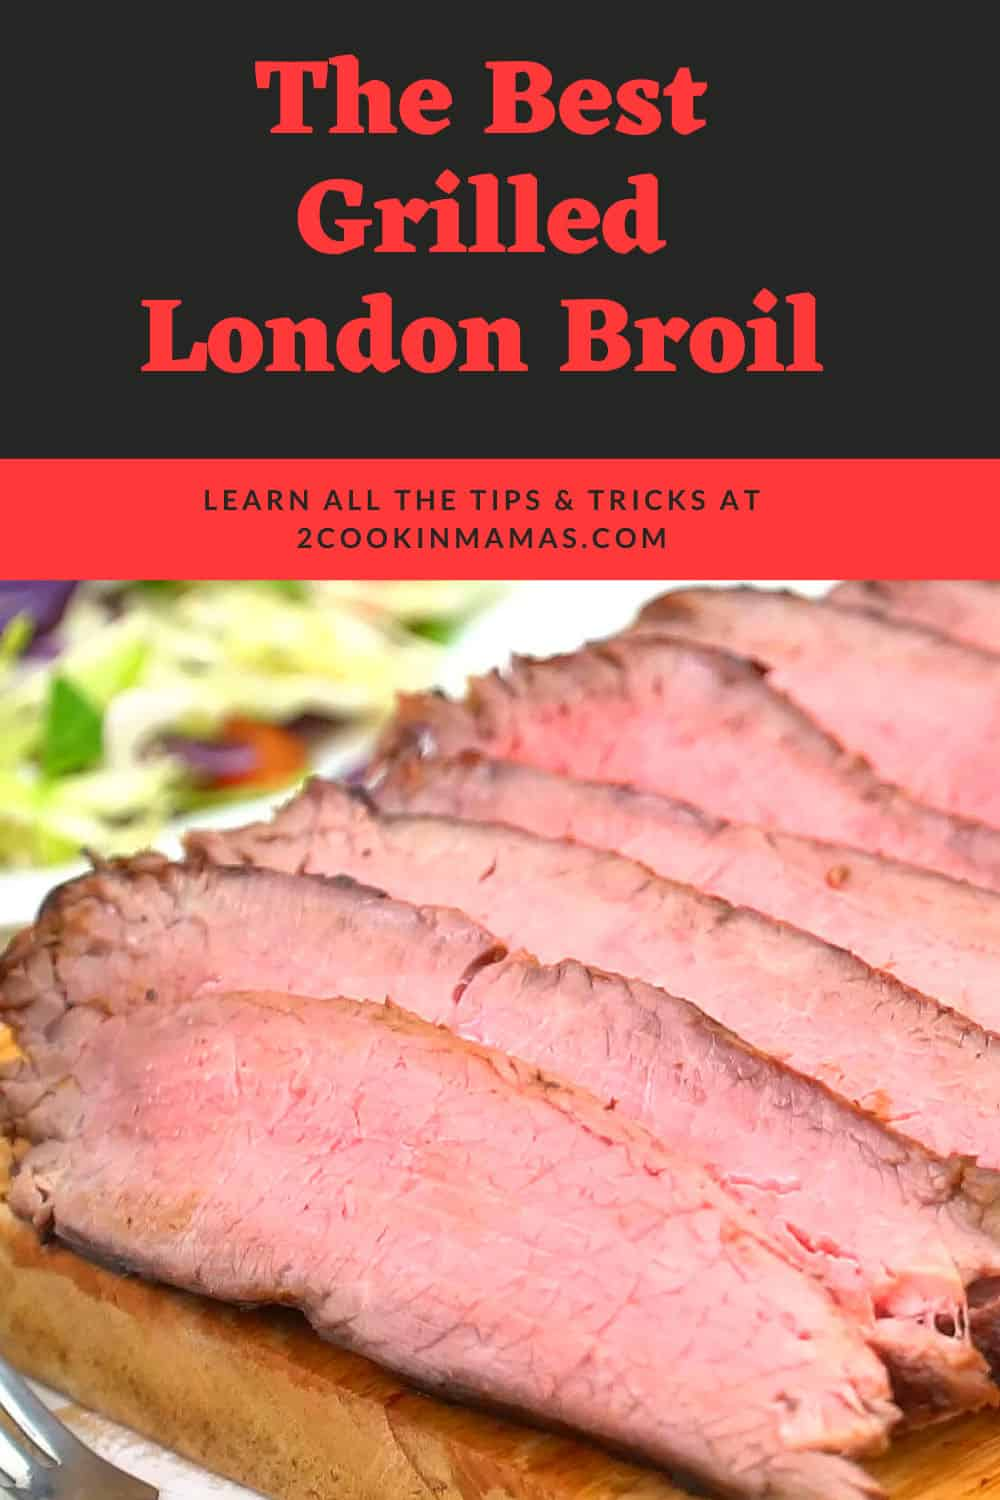 Best Grilled London Broil